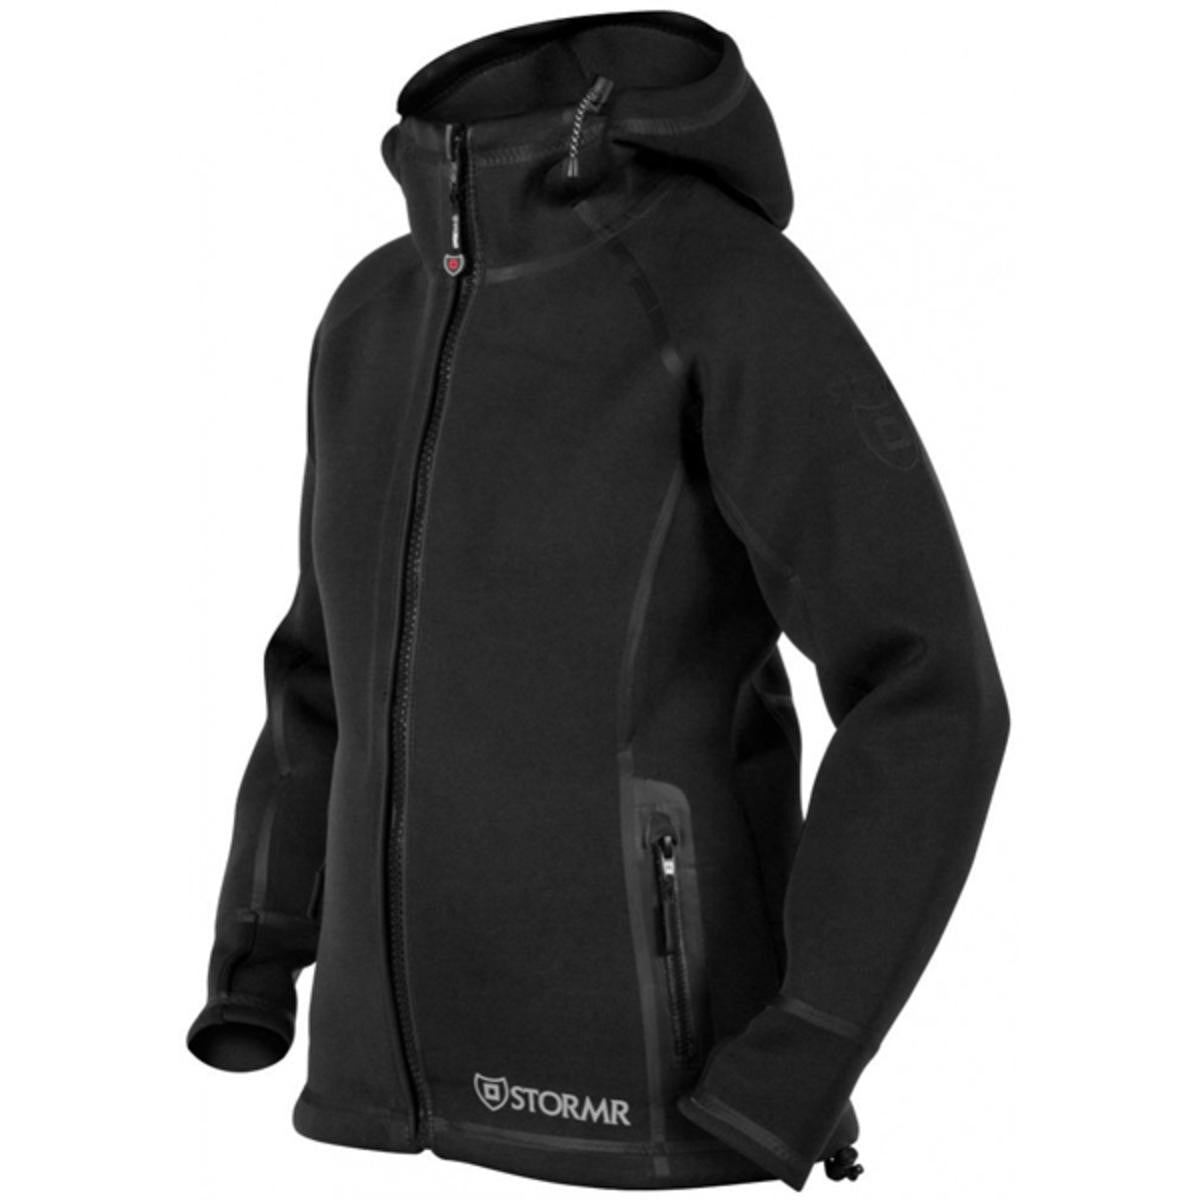 Stormr Women's Typhoon Waterproof Neoprene Jacket